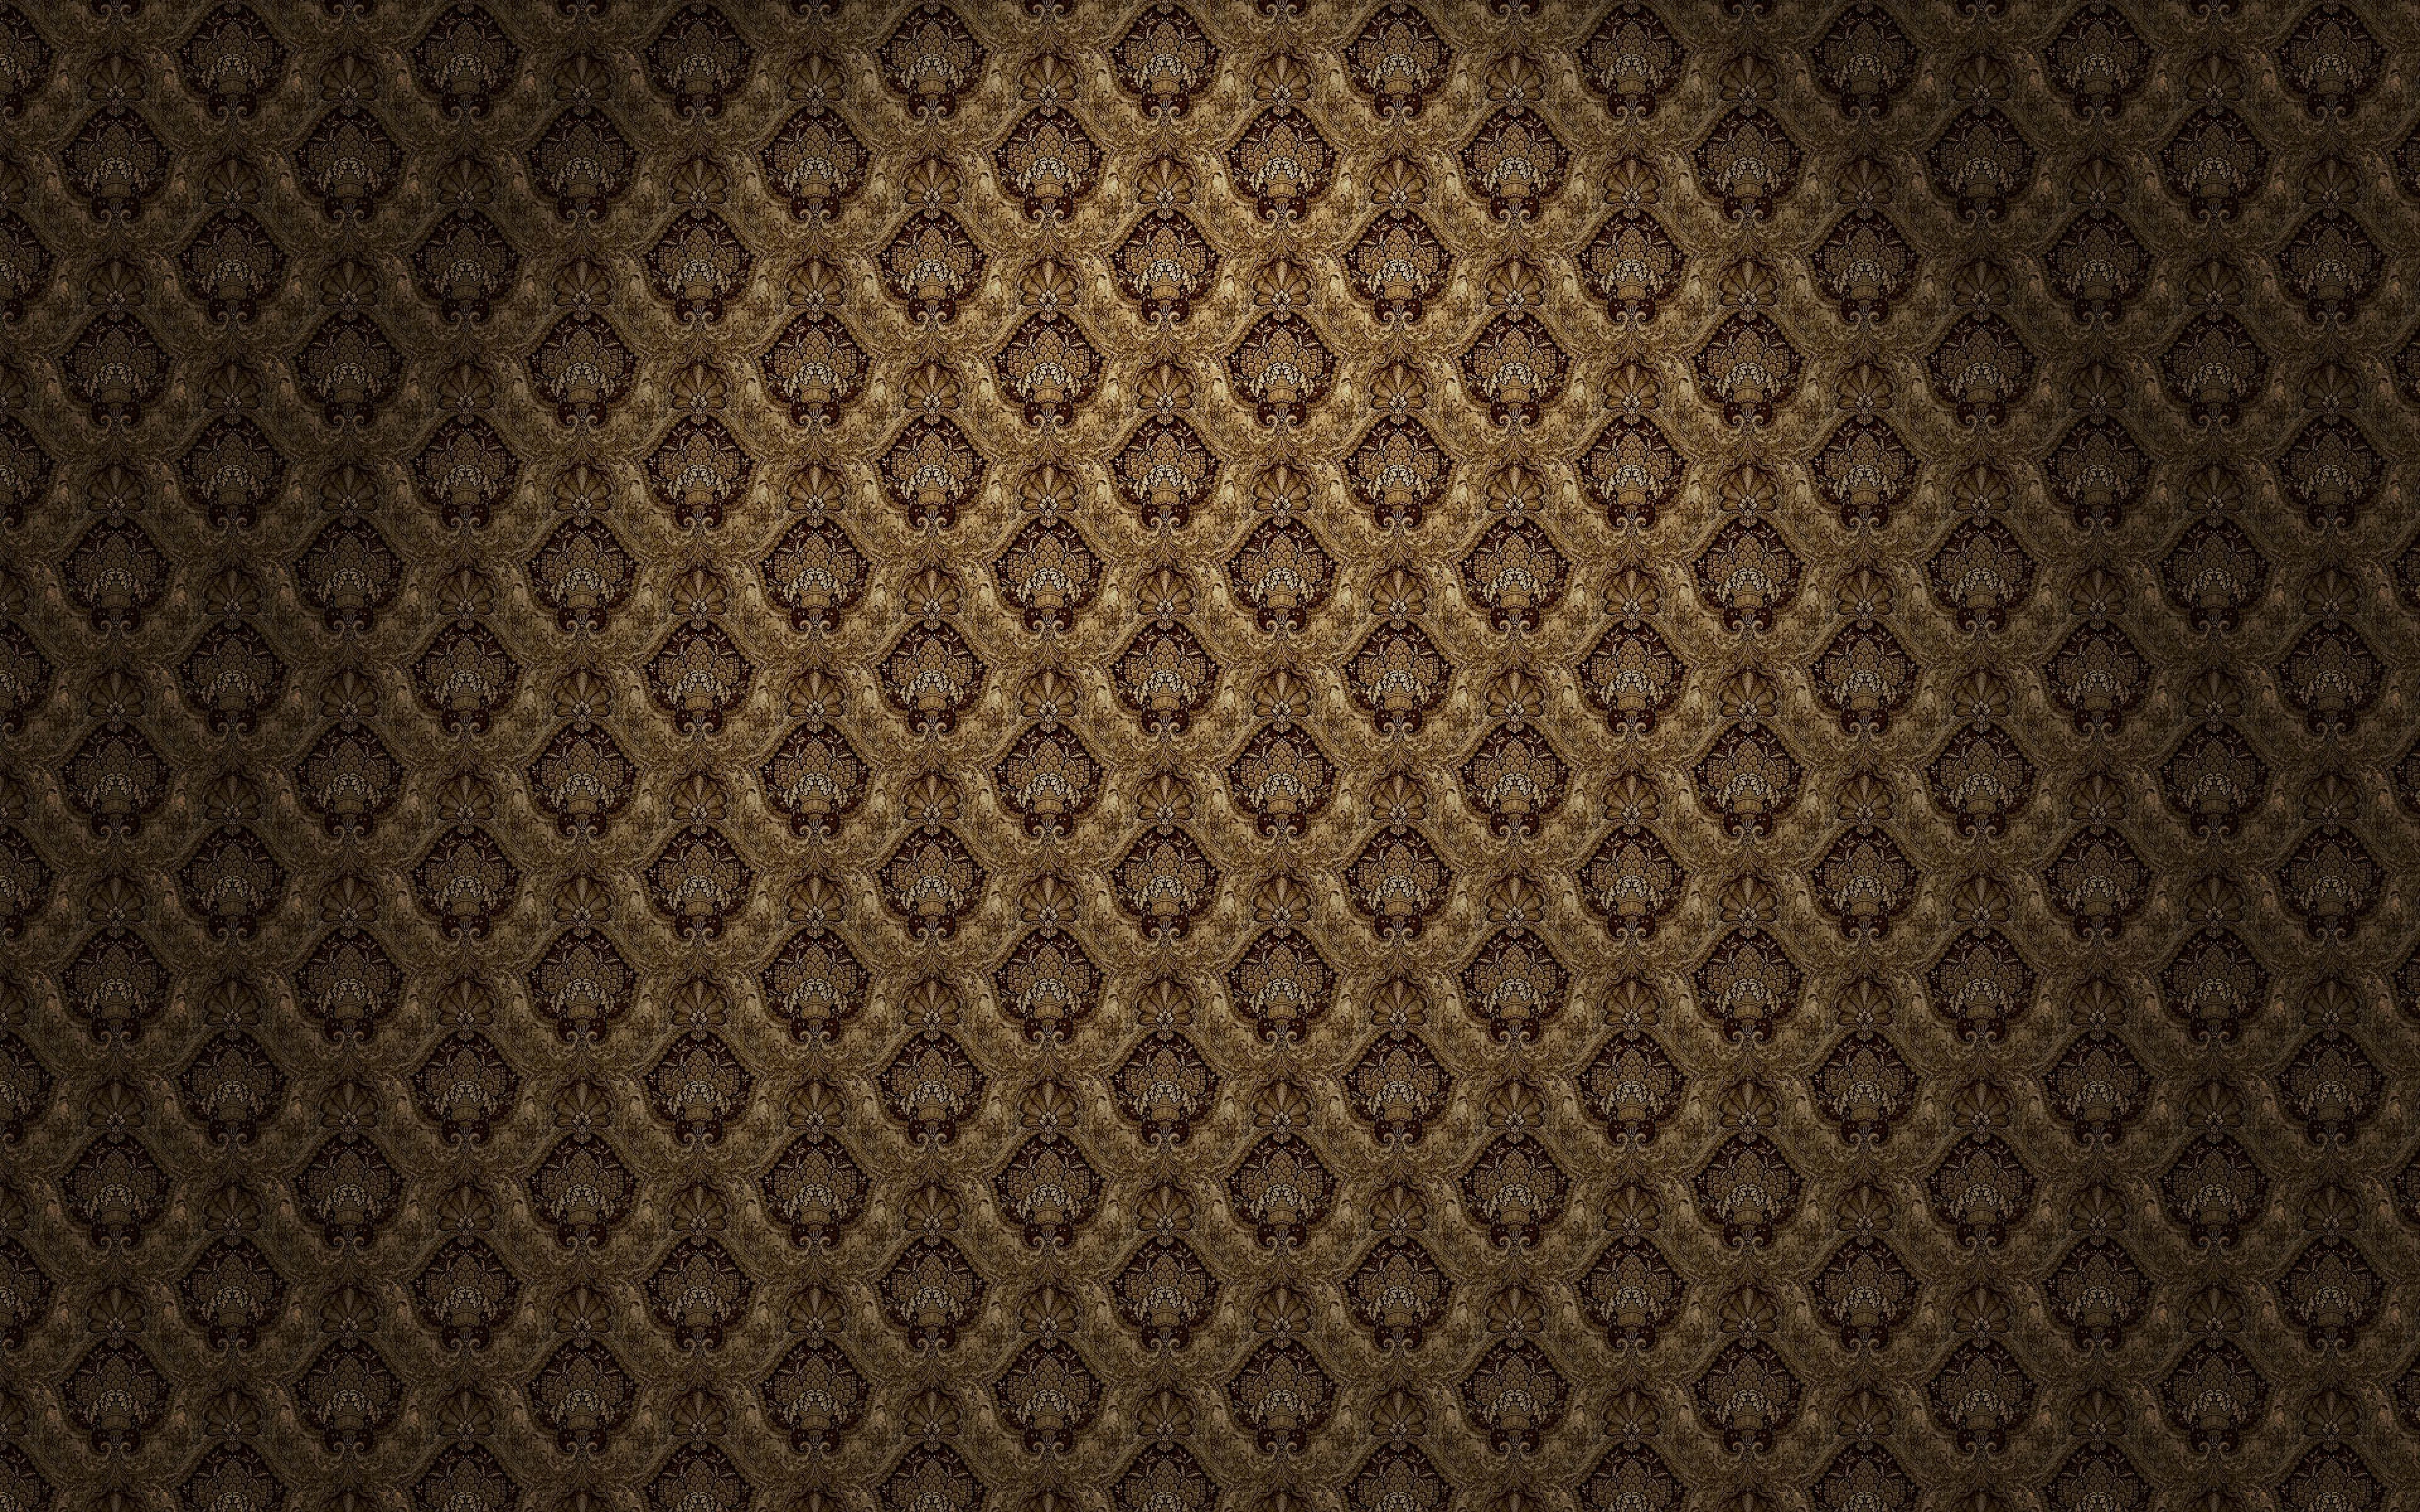 Wall Old Background Patterns Wallpaper Background Ultra HD 4K 3840x2400